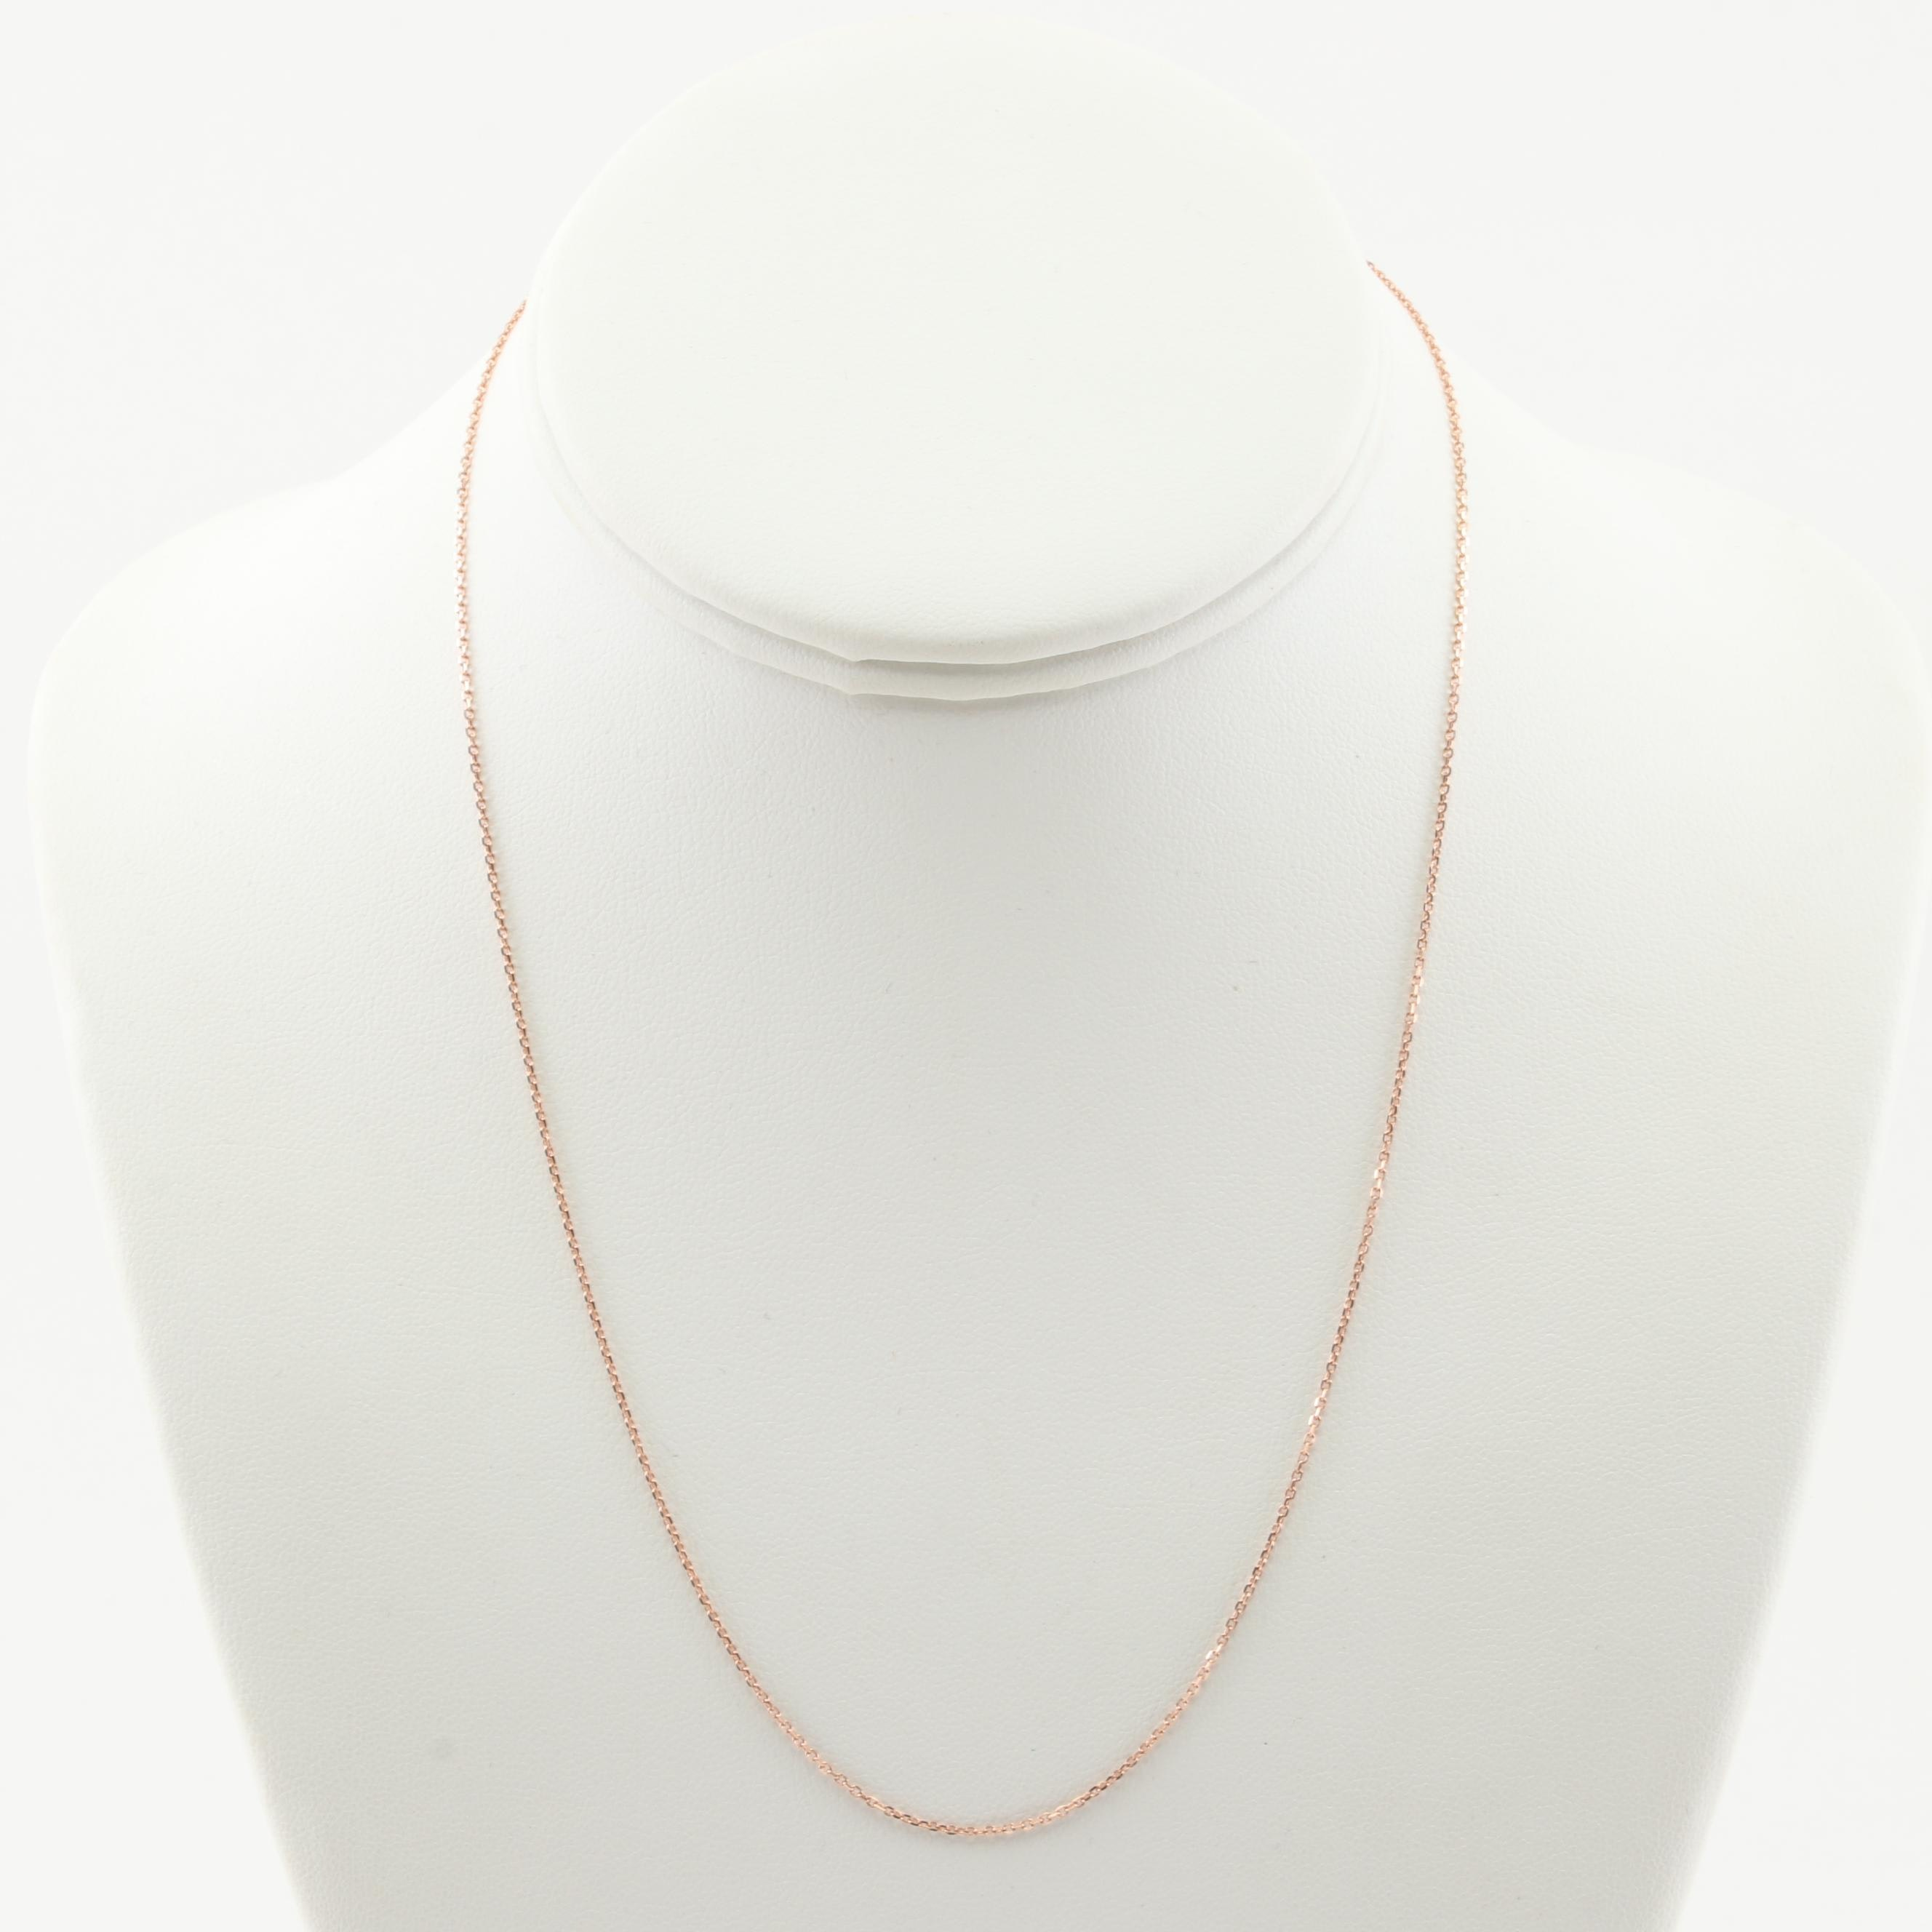 10K Rose Gold Chain Necklace